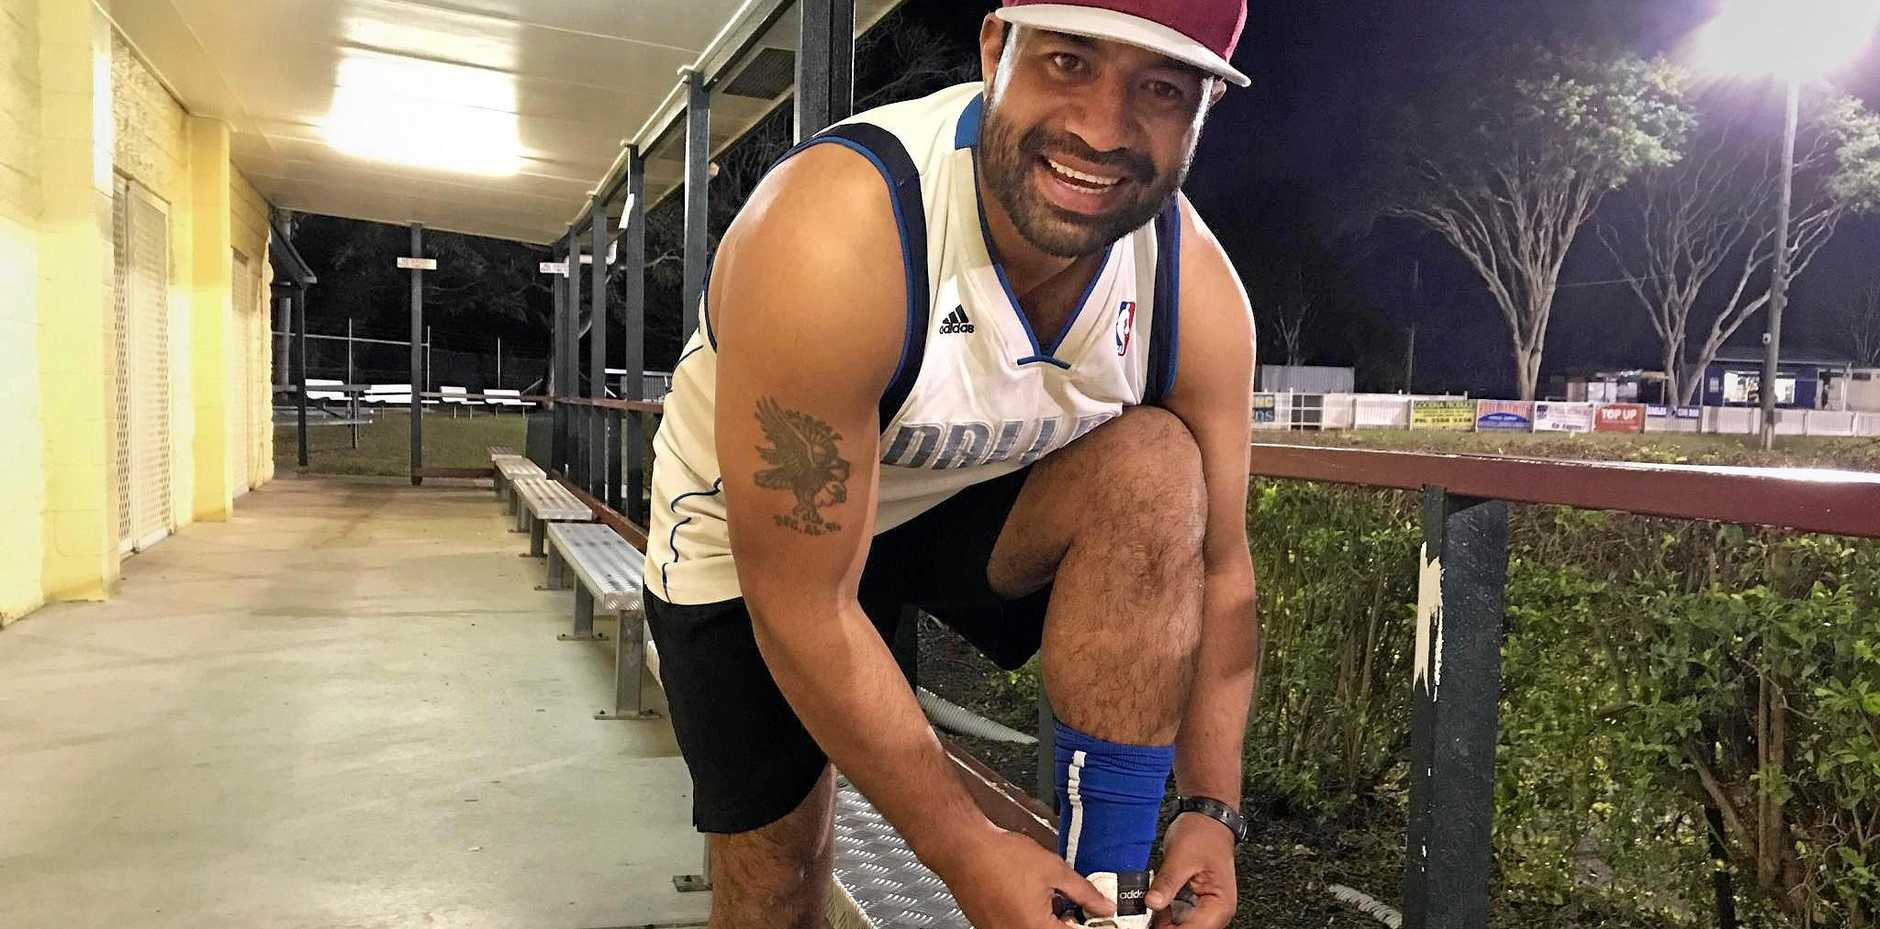 BOOTY: Alby Talipeau puts on his Adidas boots at training ahead of the grand final on Saturday, a far better choice than the $2 cheapies he bought for his NRL debut.